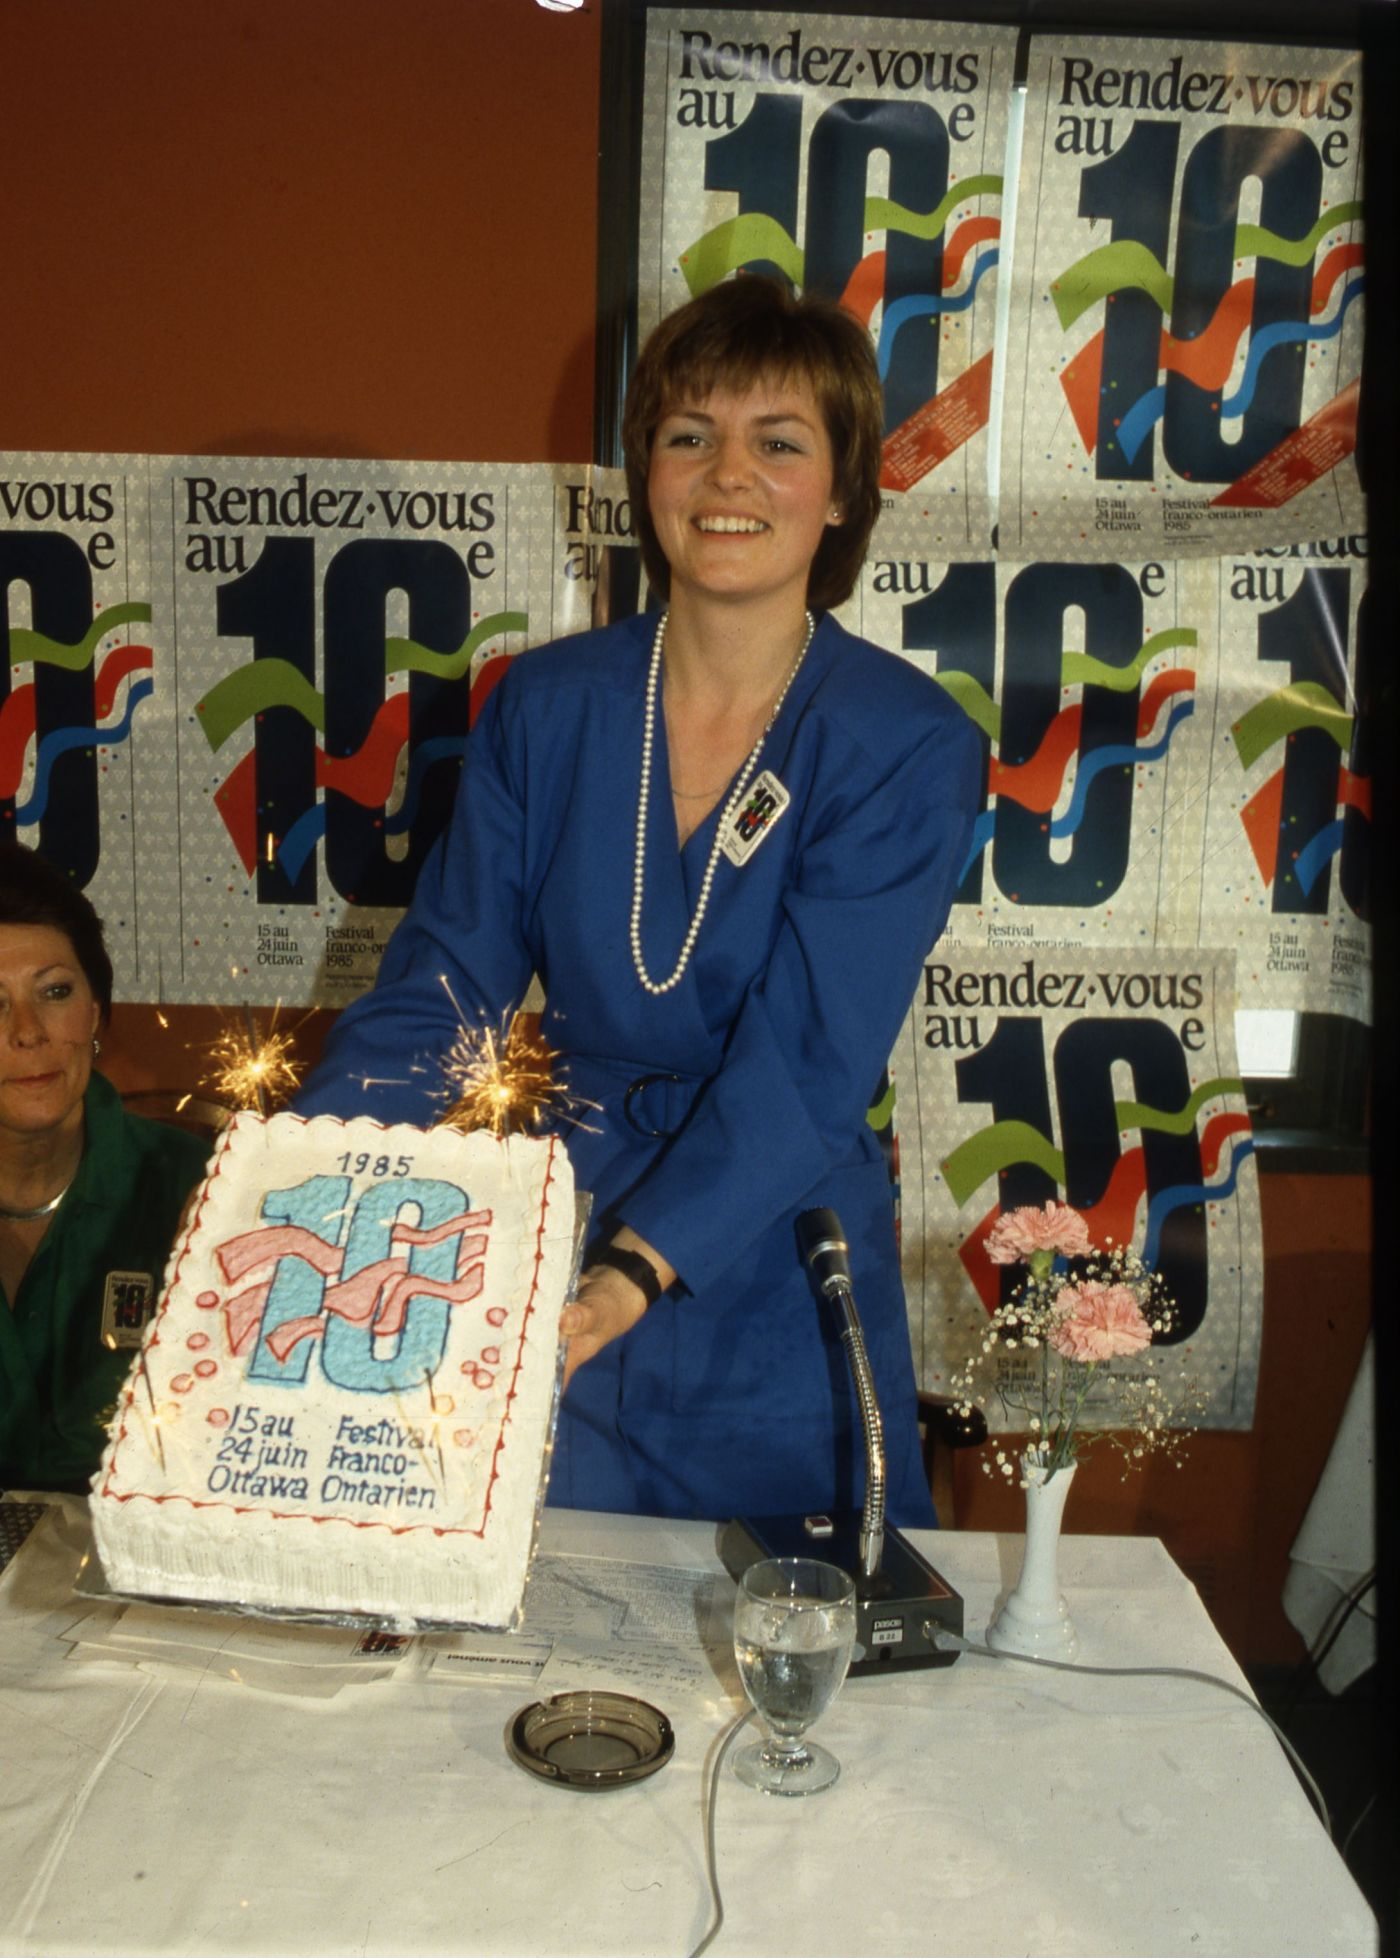 """Colour photograph of a middle-aged, smiling woman with short brown hair, wearing a blue dress. She holds up a cake decorated with a large number 10, a date, and the words """"Festival Franco-Ontarien."""" Behind her, a wall covered with 10th anniversary promotional posters."""